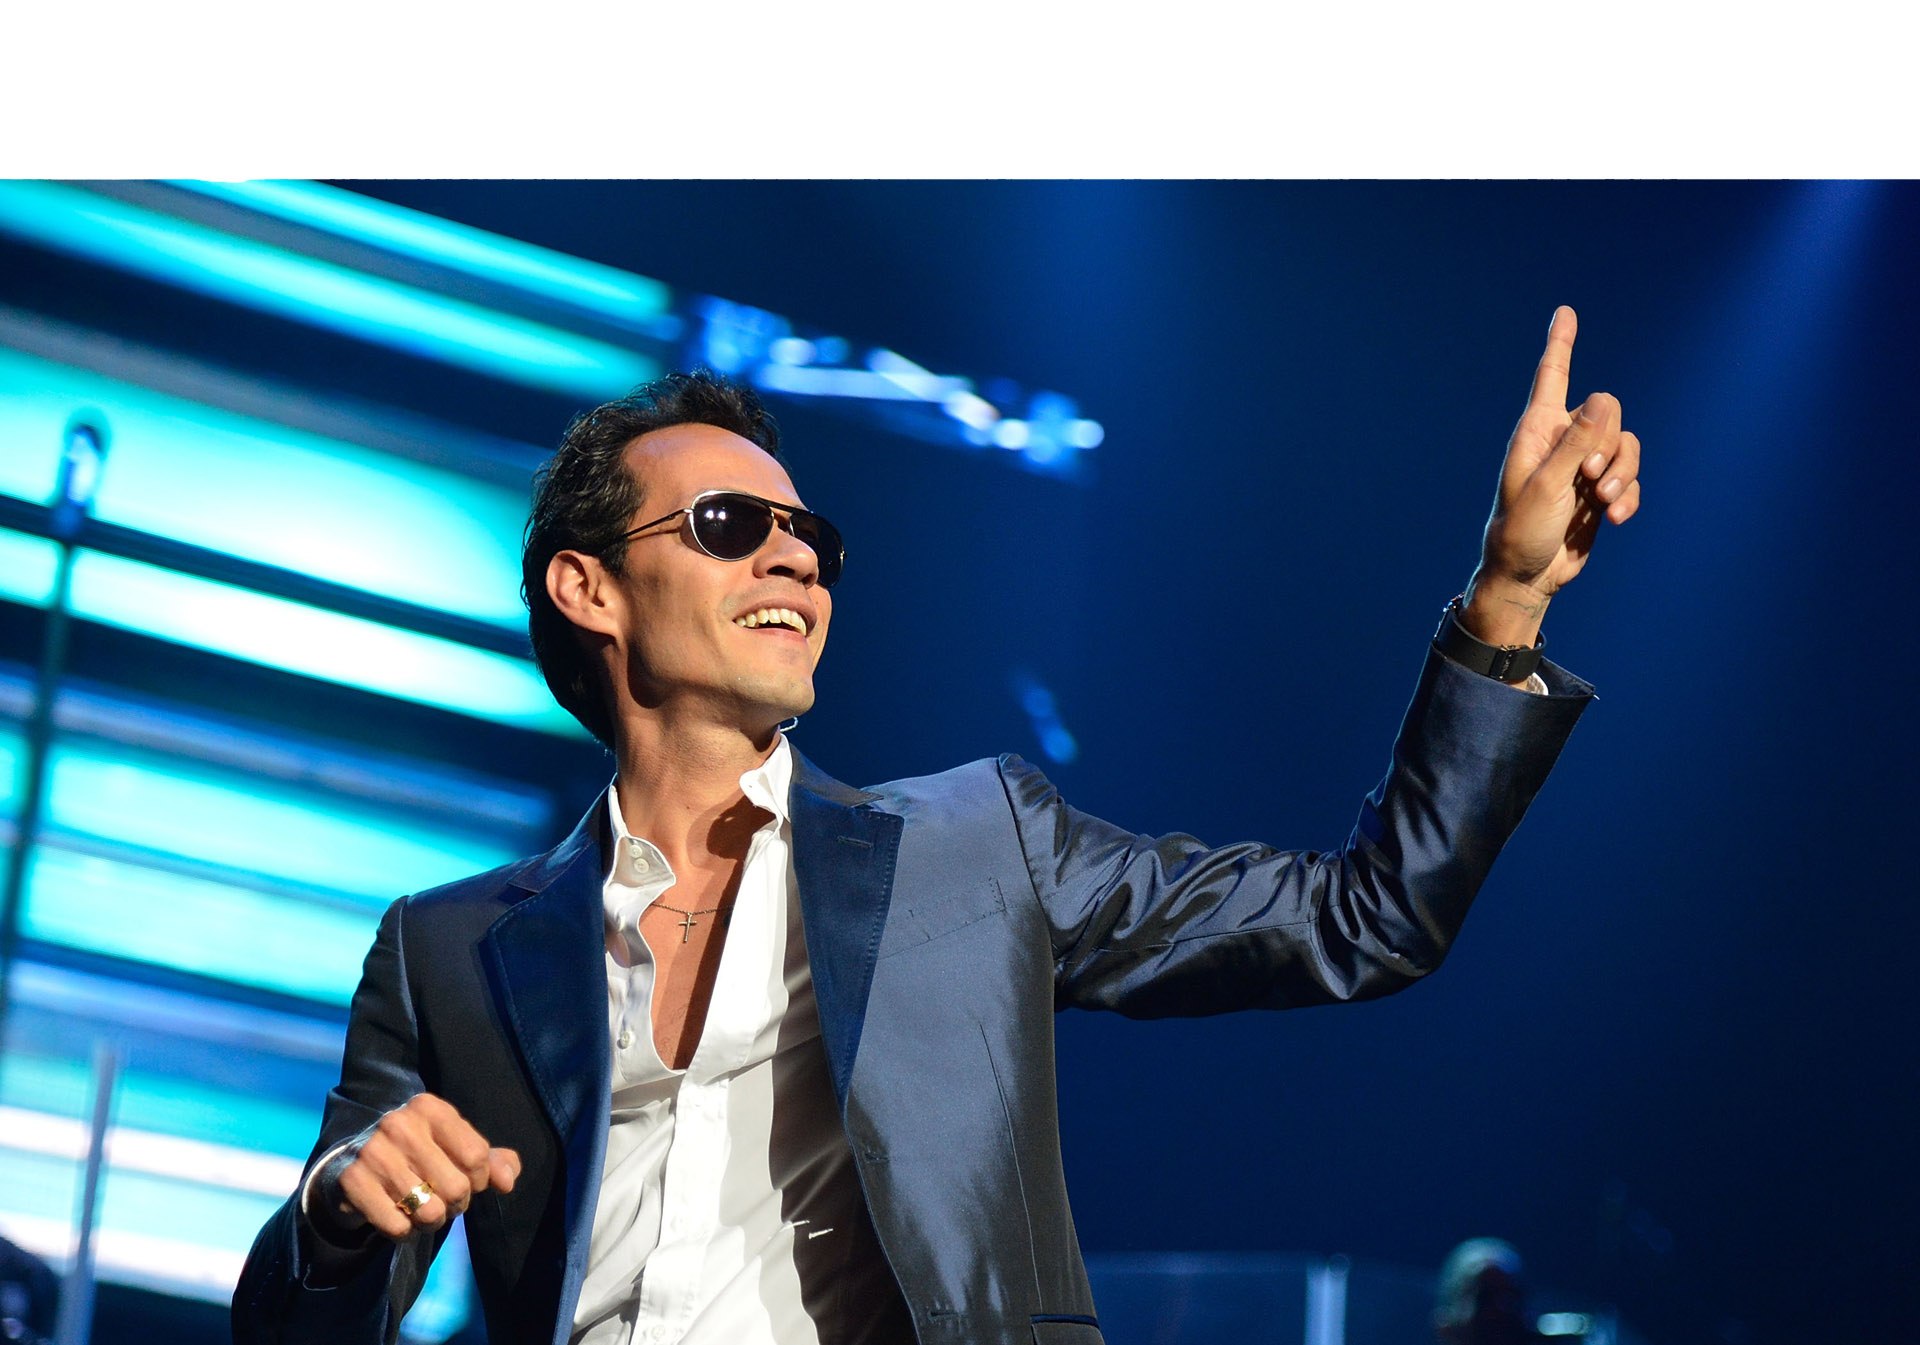 Marc Anthony rompe récords de taquilla en Marbella